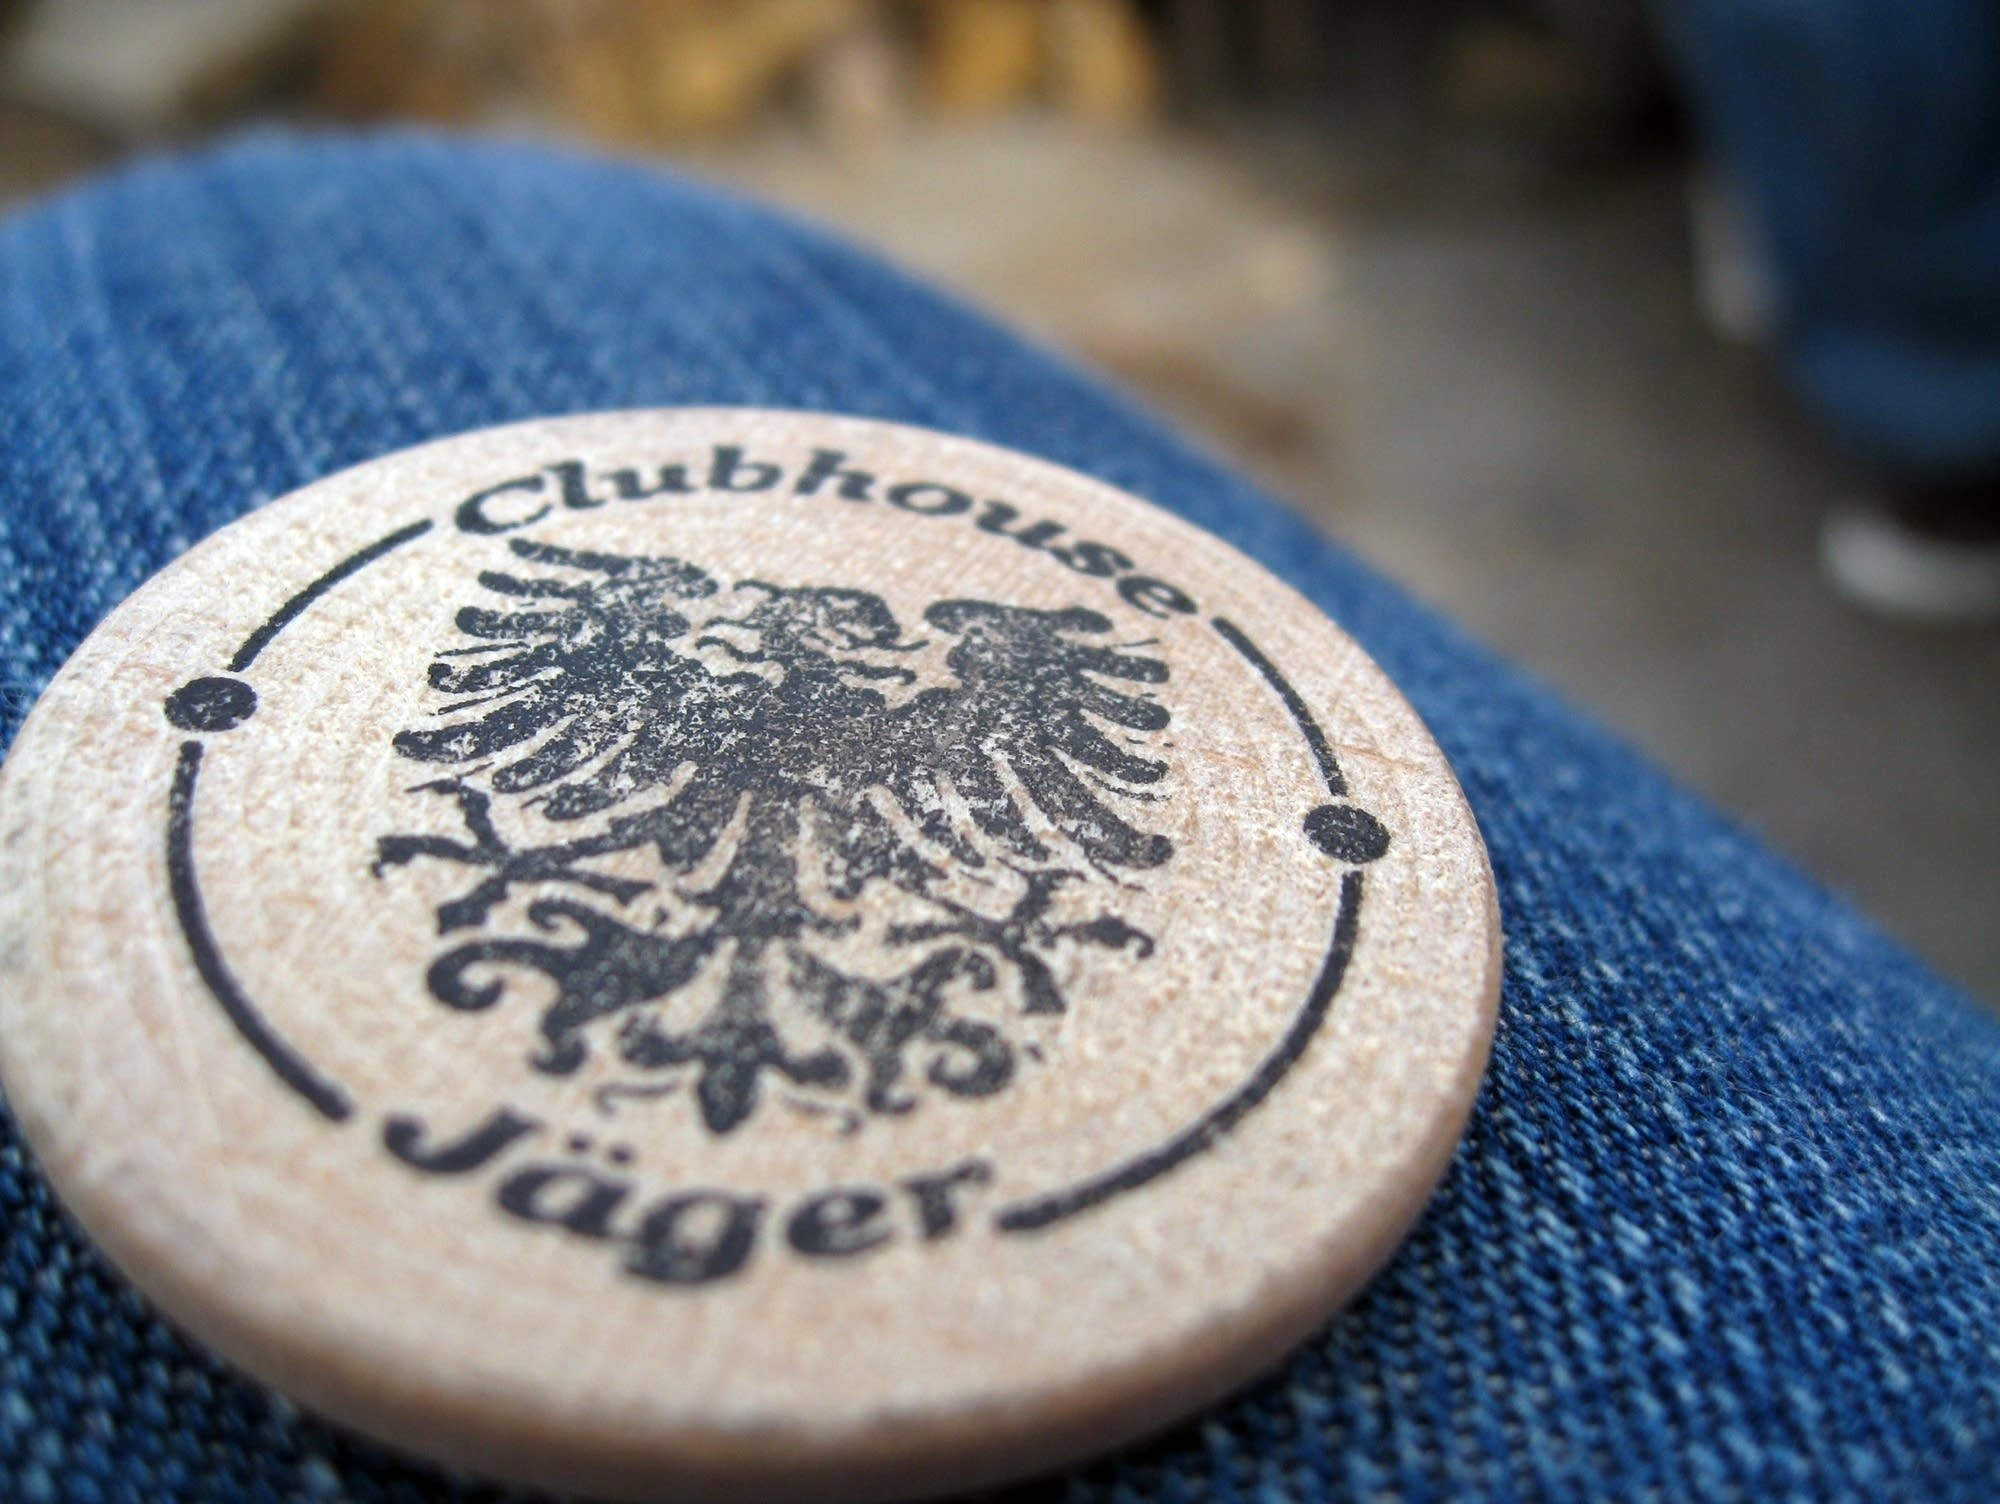 A drink token from Clubhouse Jager.